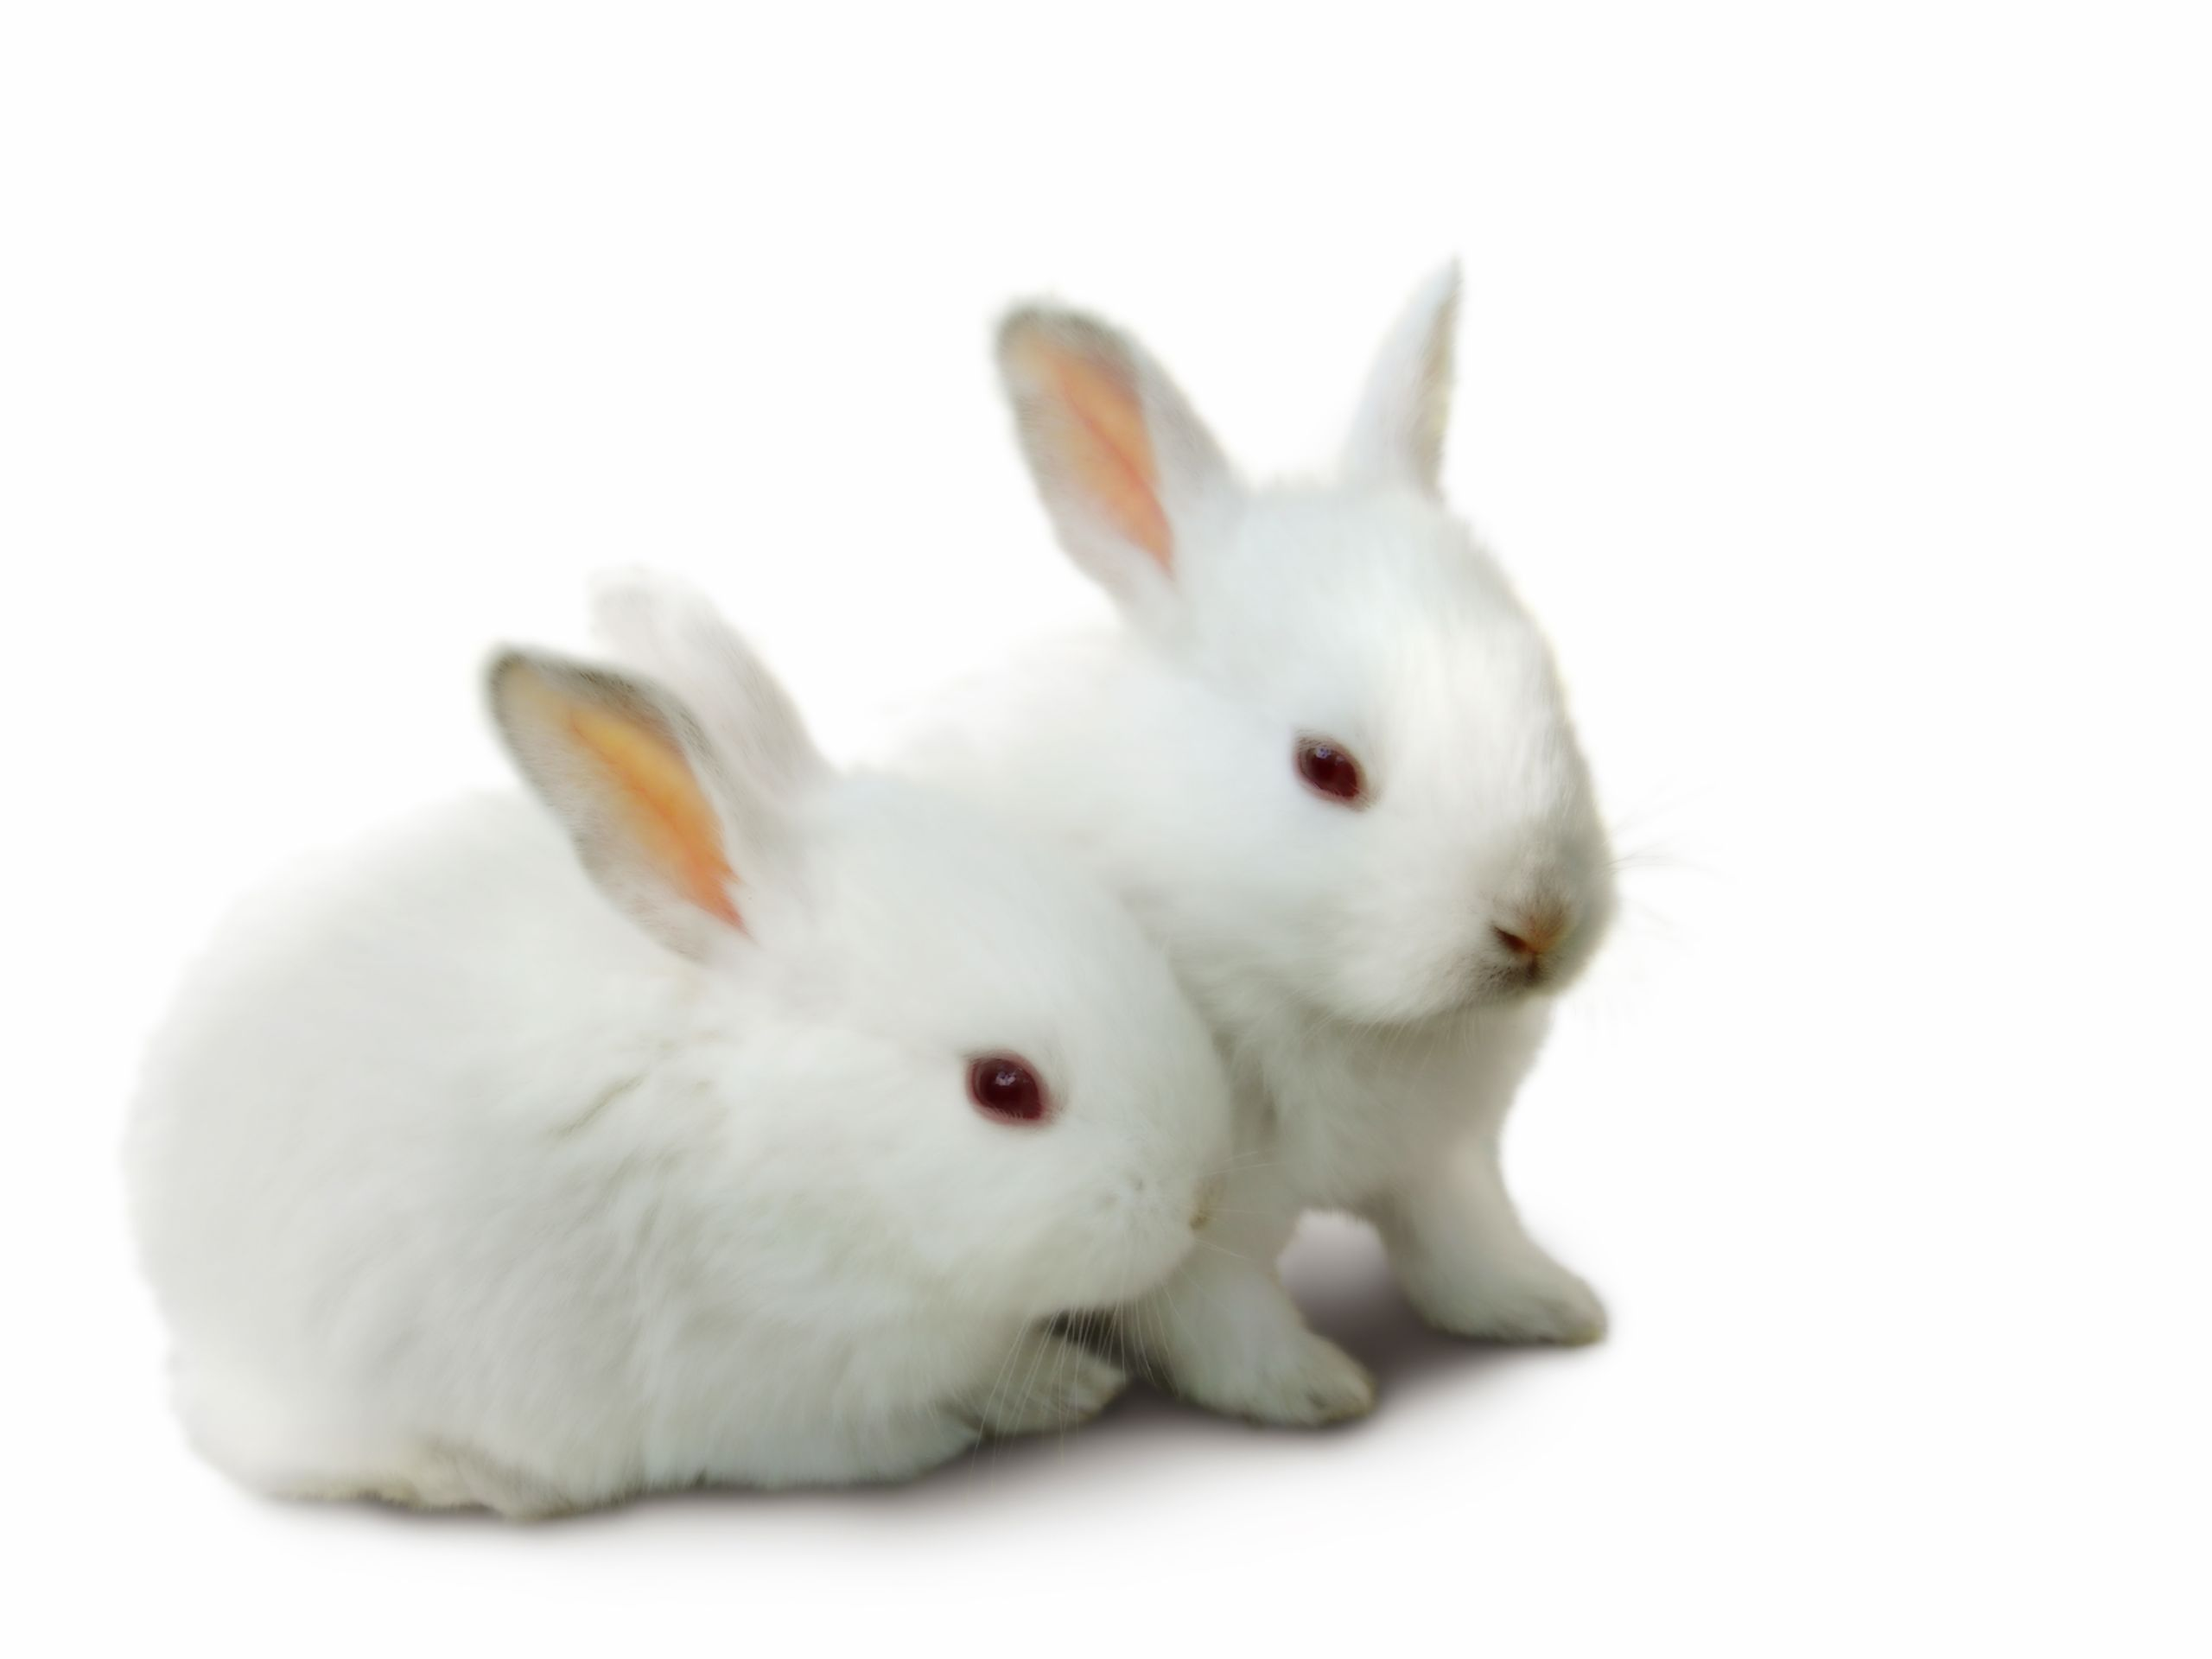 Cute Rabbit HD Beautiful Wallpapers Picture Free For Desktop